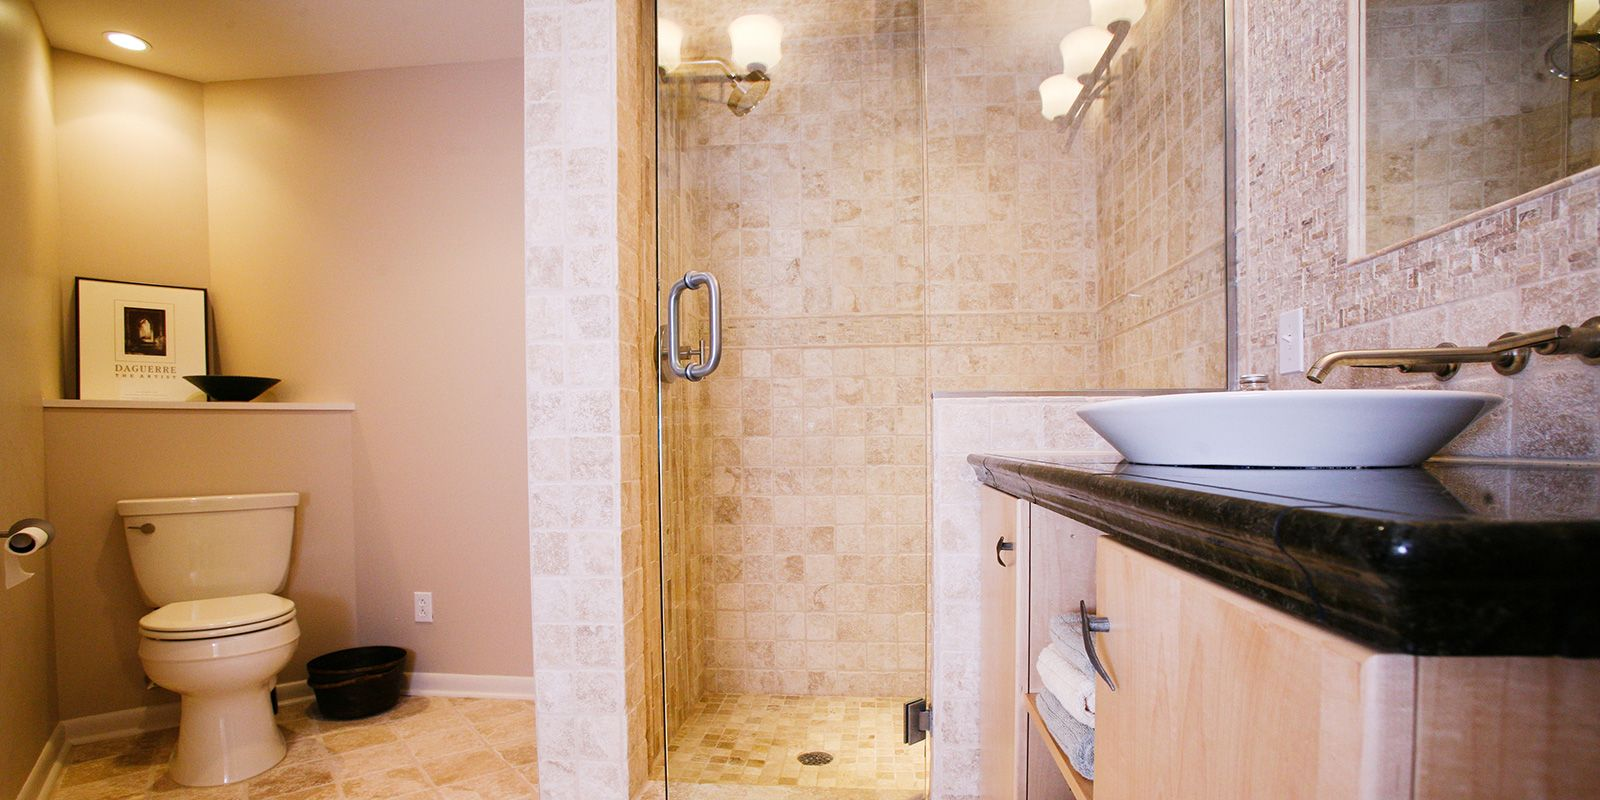 Bathroom Remodeling Rochester NY Bathroom Renovations Norbut - Bathroom remodeling rochester ny